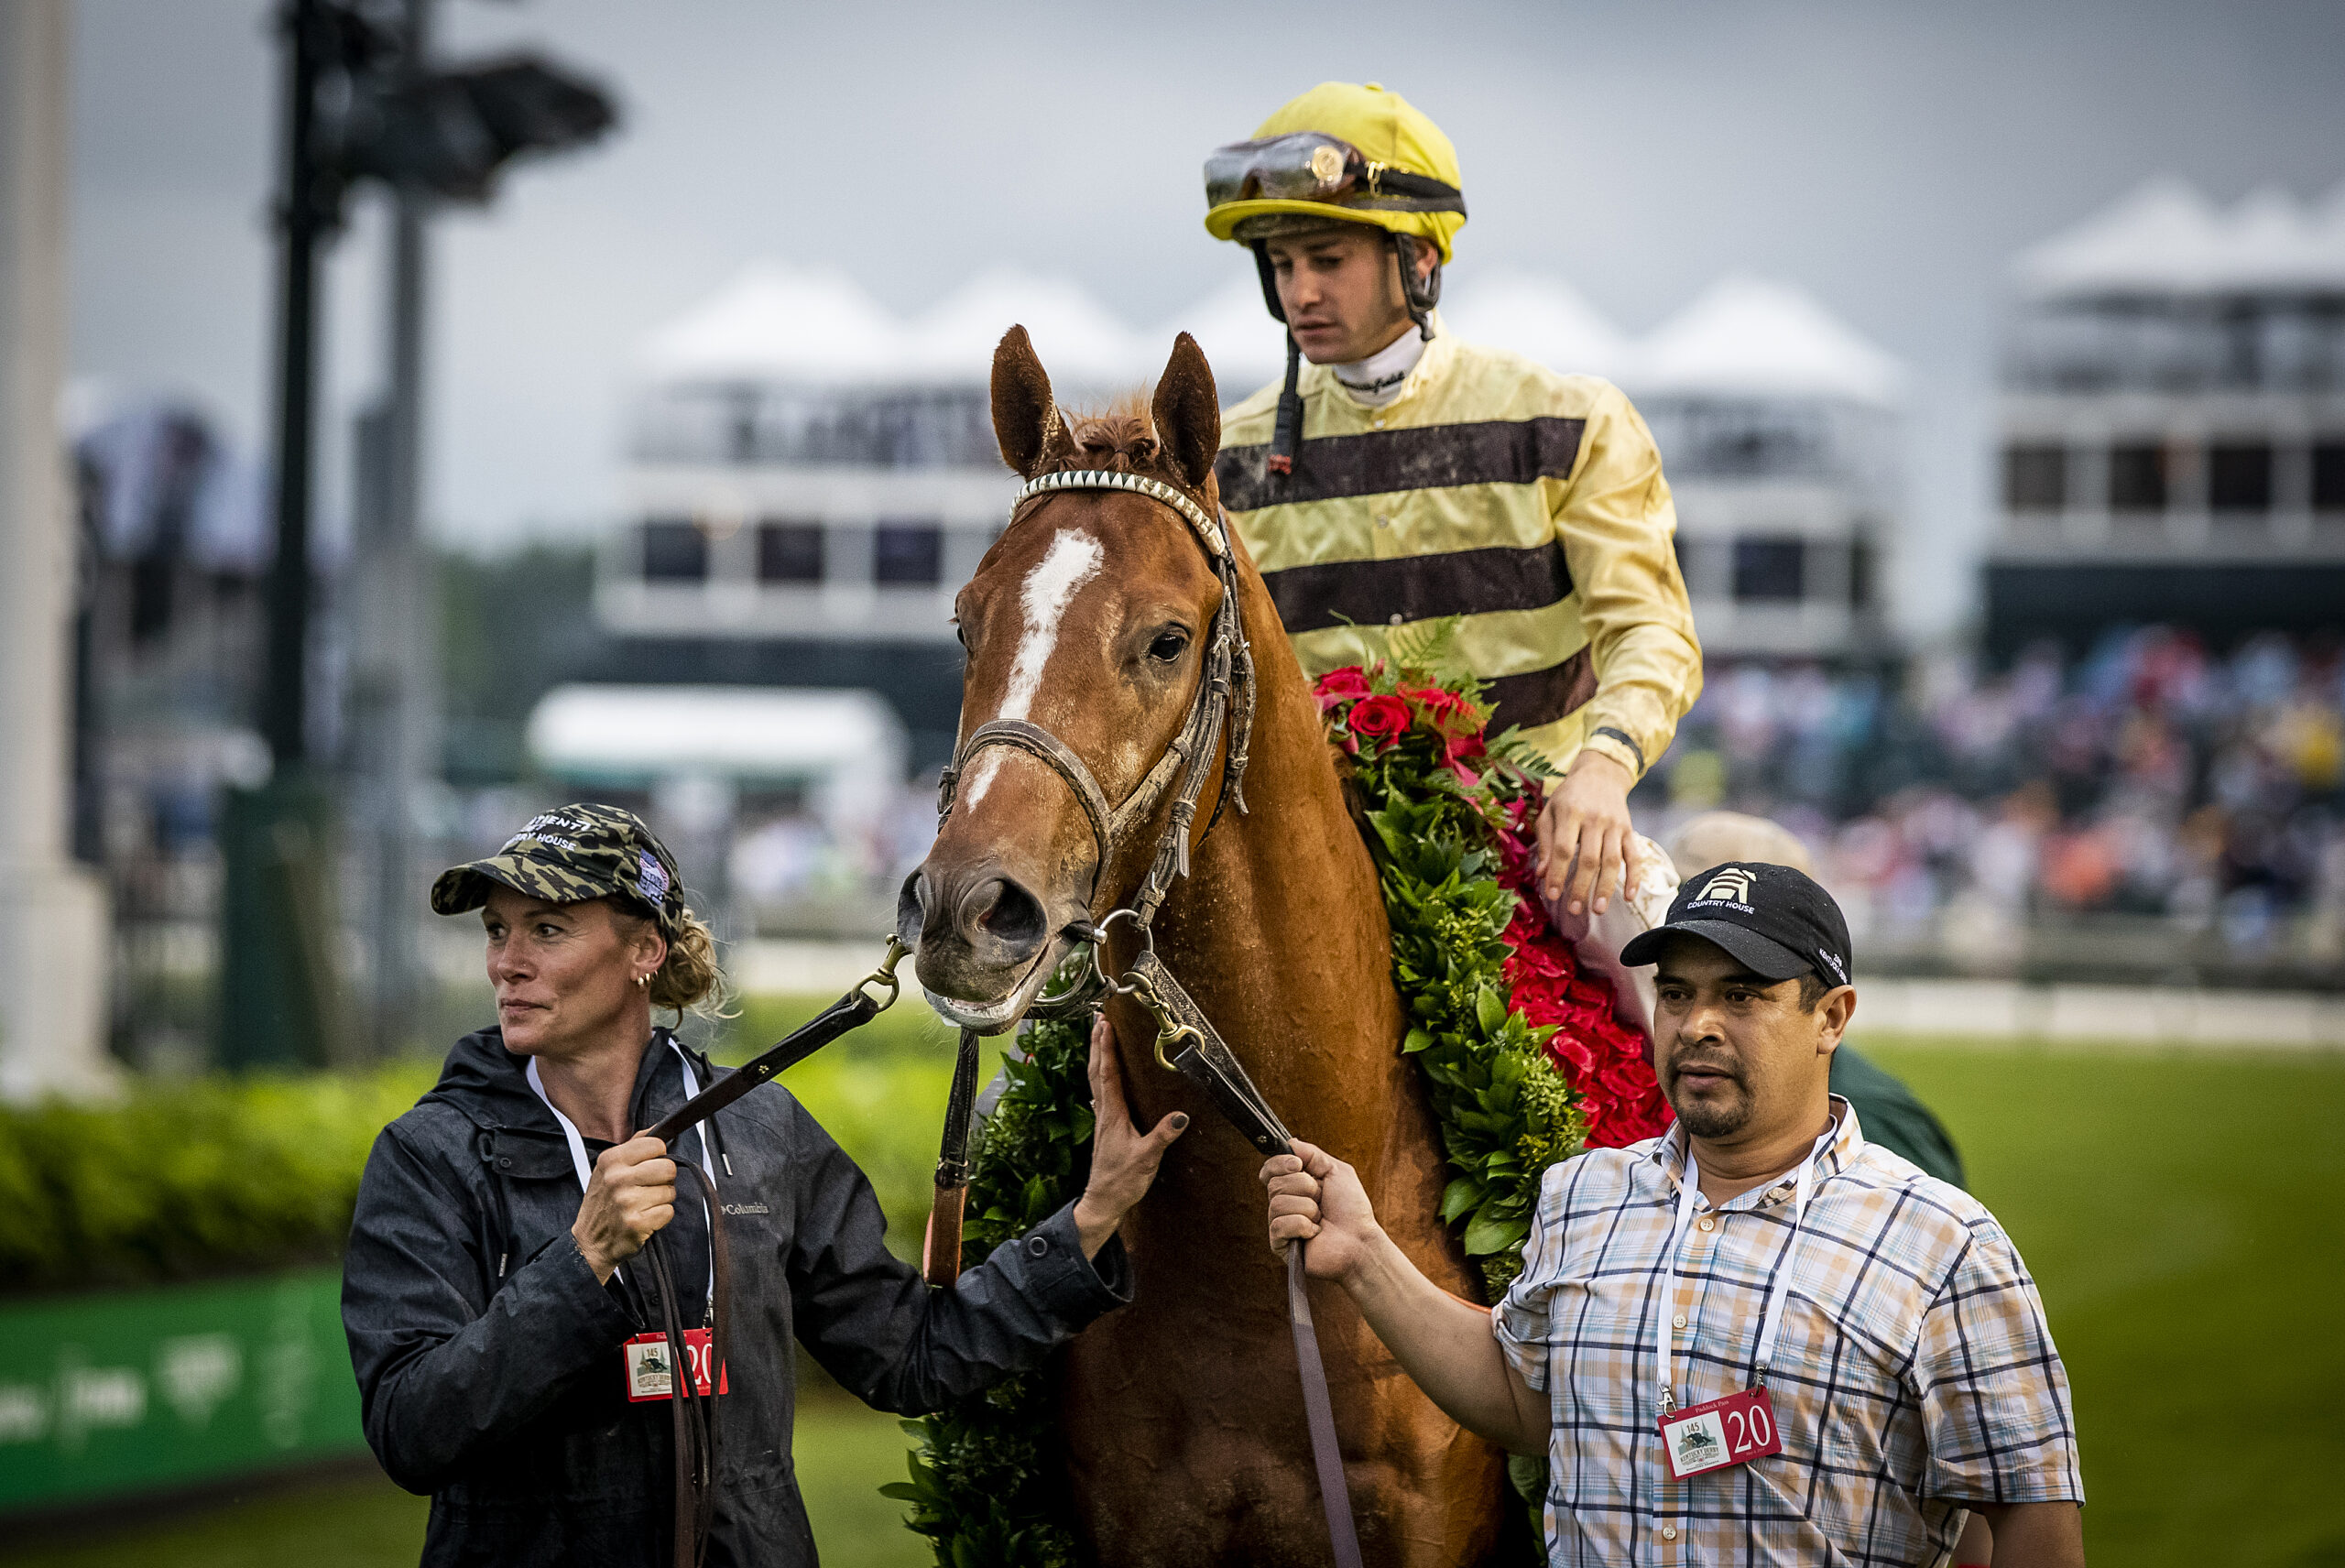 Kentucky Derby winner Country House to stand at Darby Dan Farm